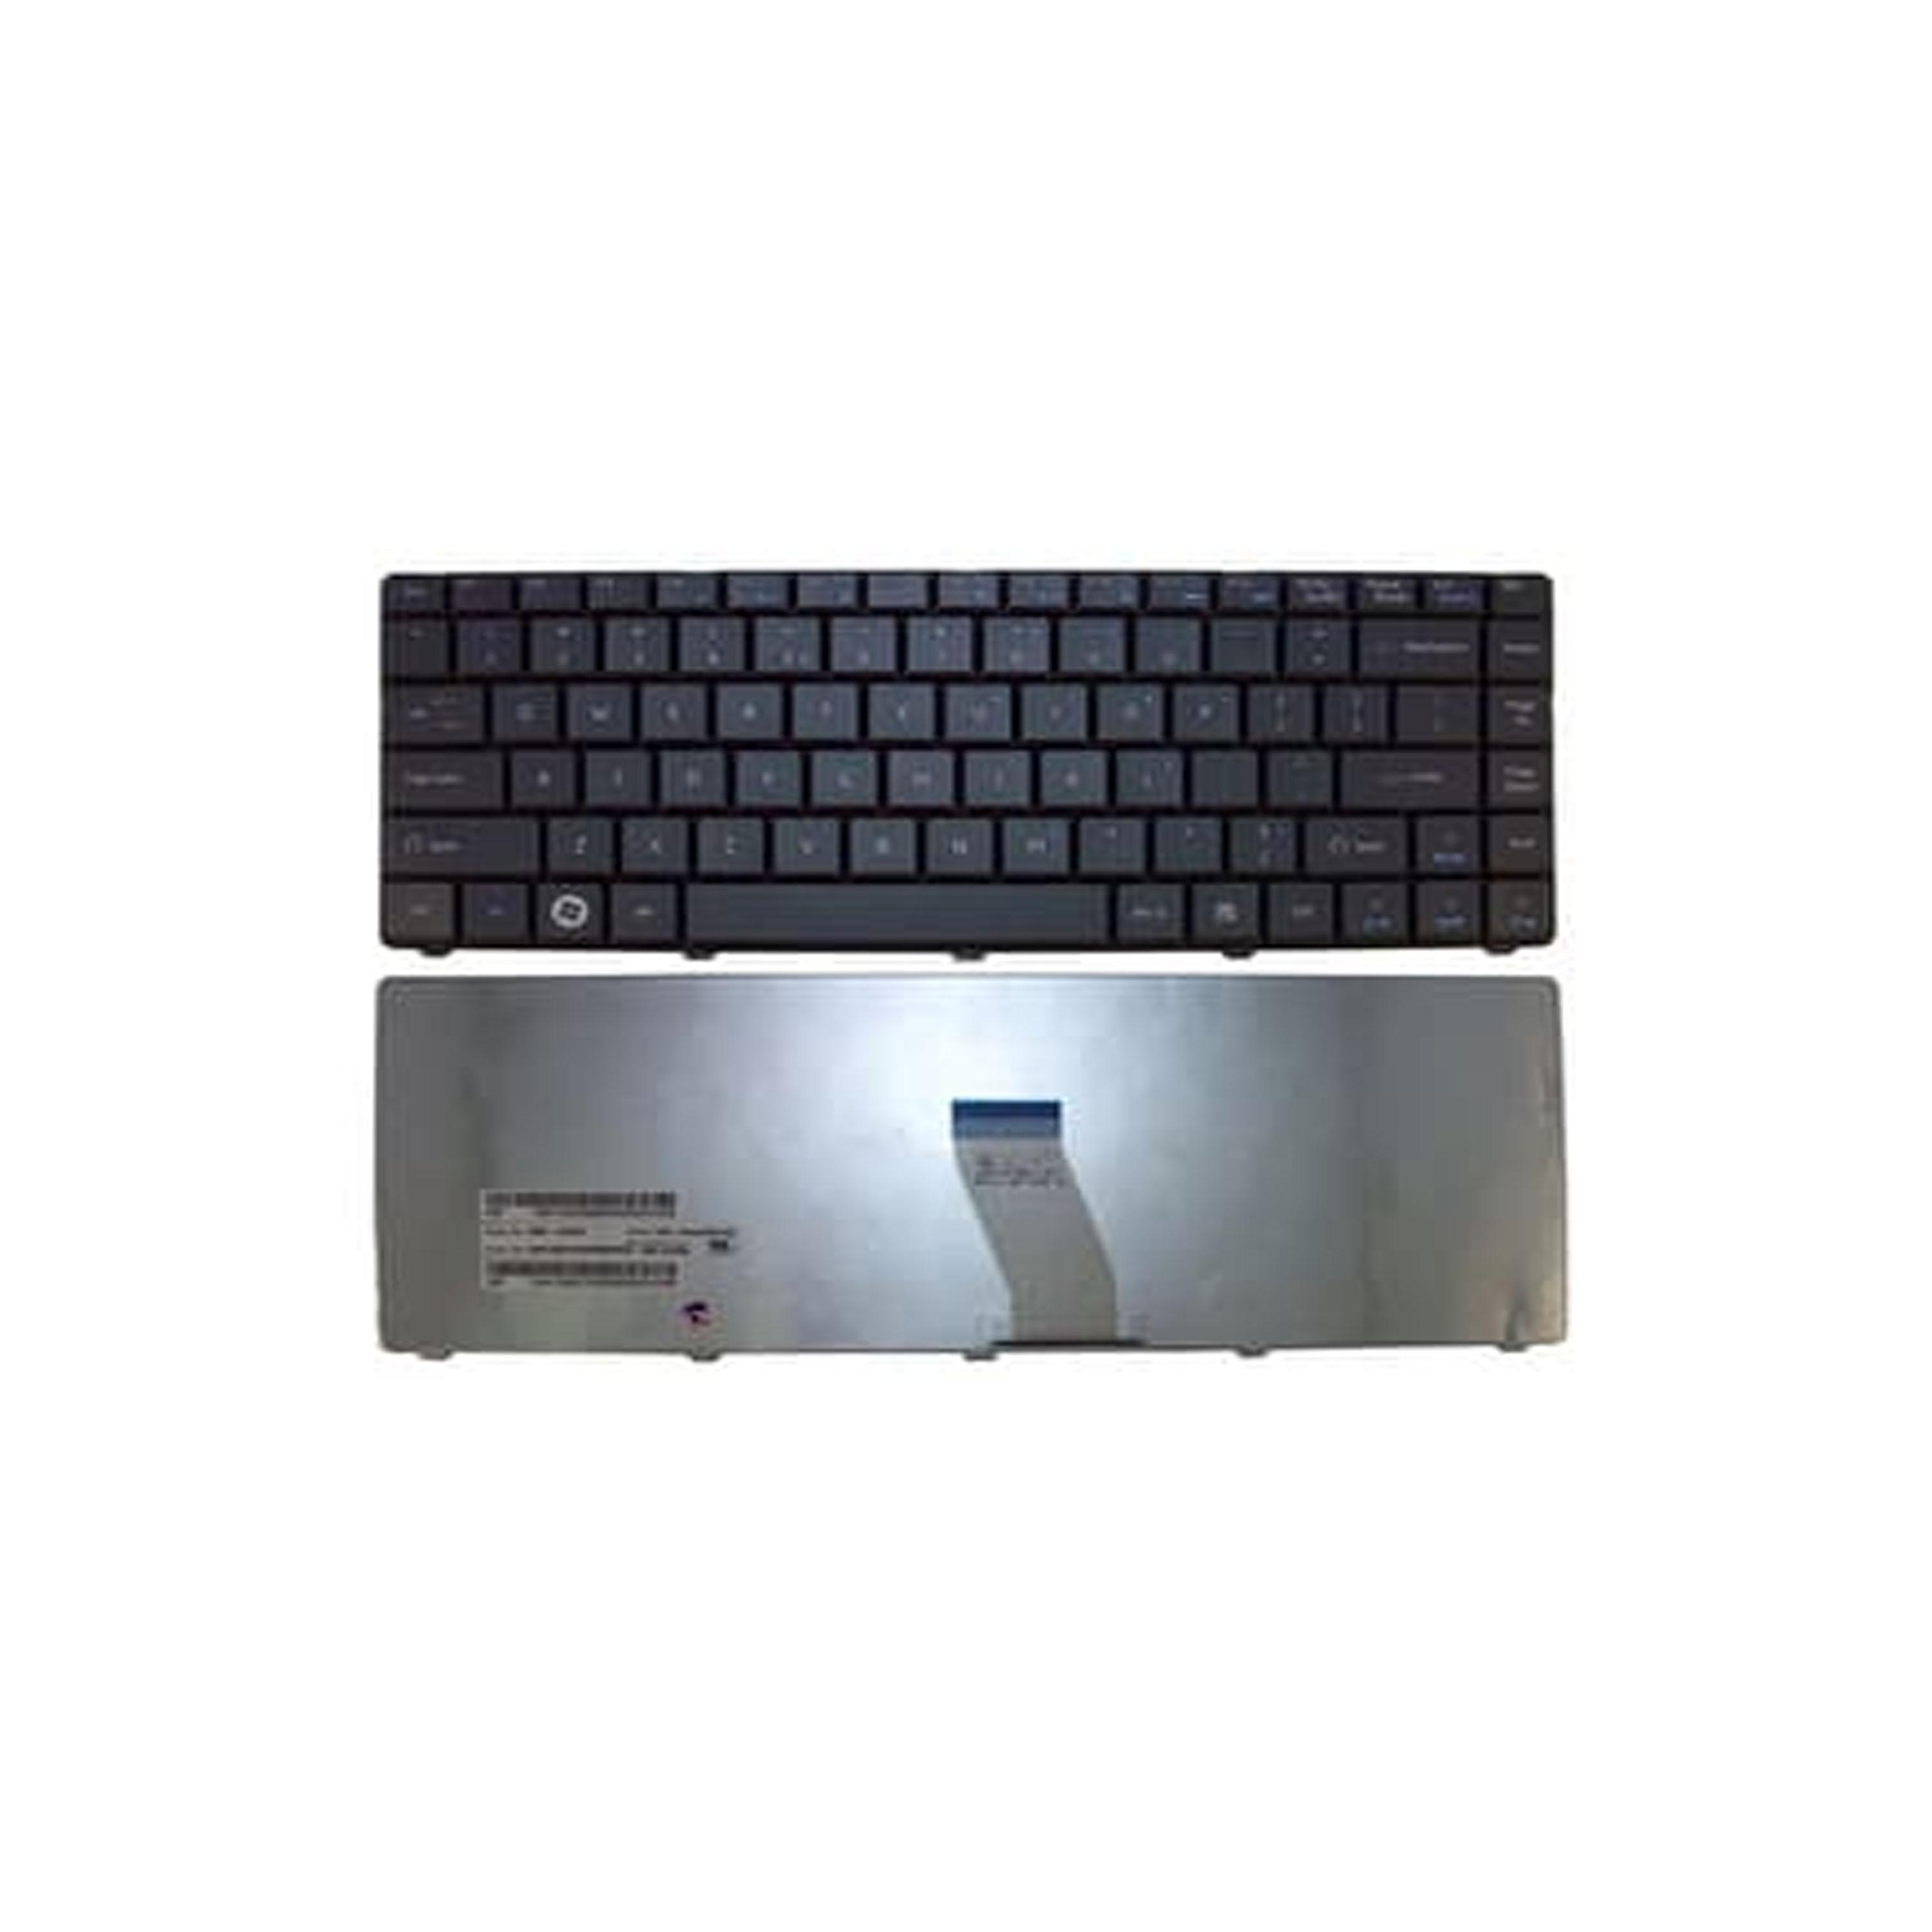 Keyboard Laptop Acer Aspire 4732 4732Z Series/Emachines D725,D525